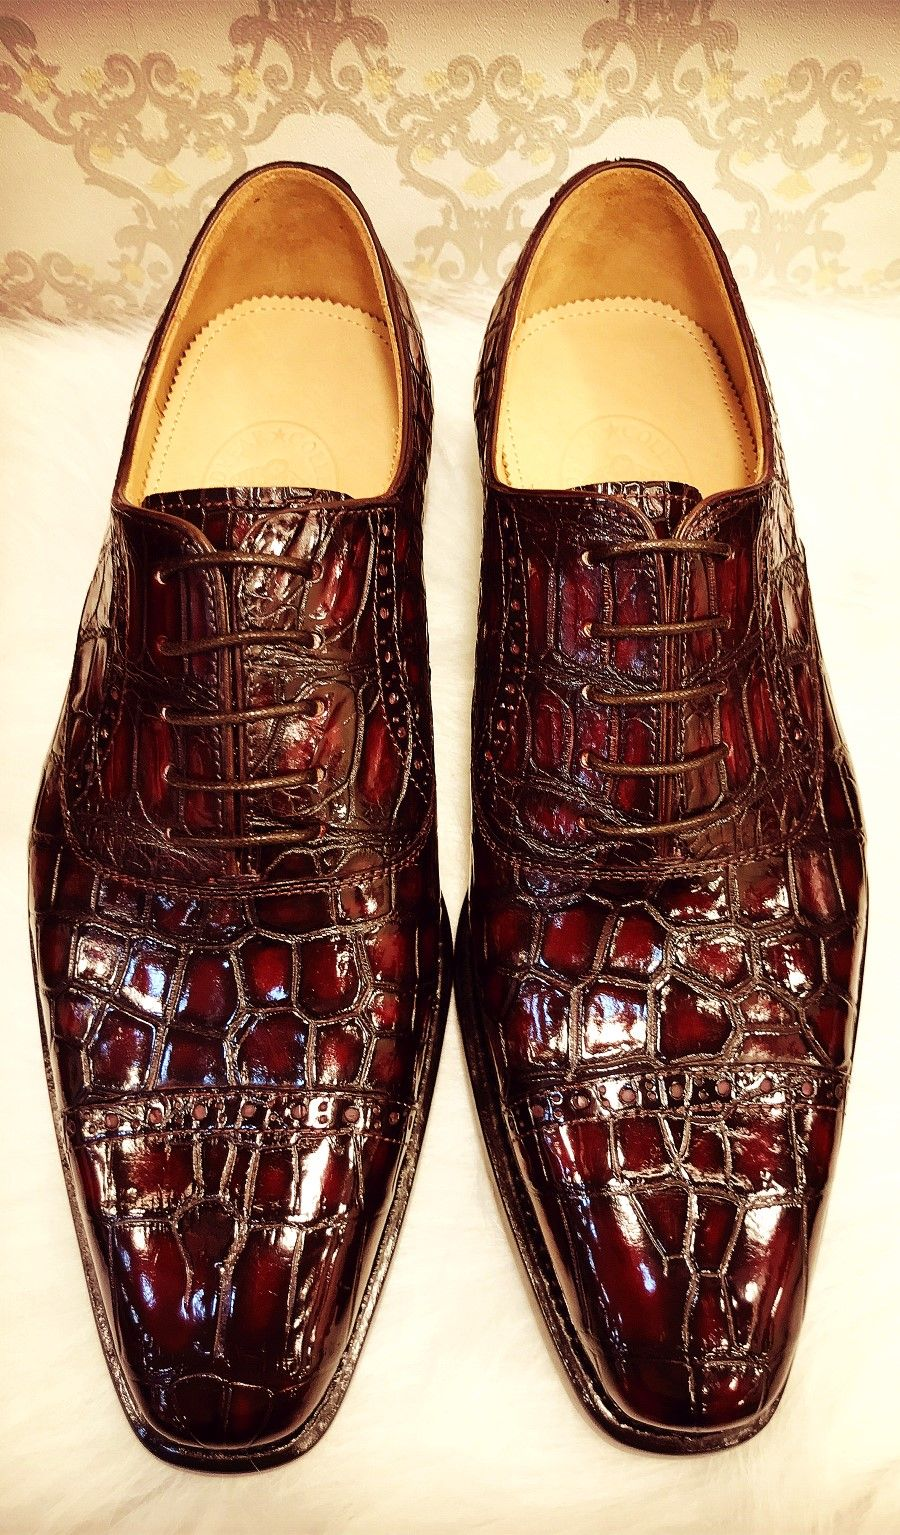 ce0c7ac0d5 Mens alligator leather shoes for sale Sapatos Masculinos